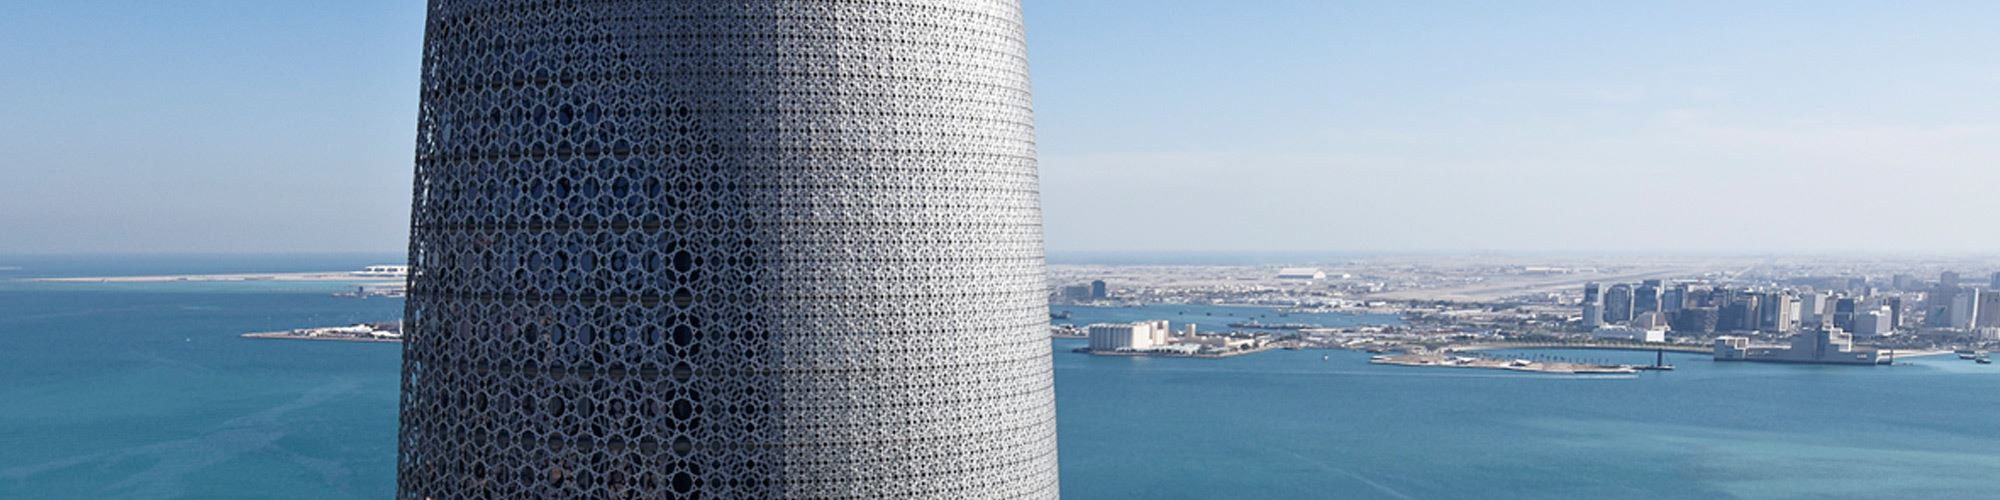 Doha Tower Doha Banner 1